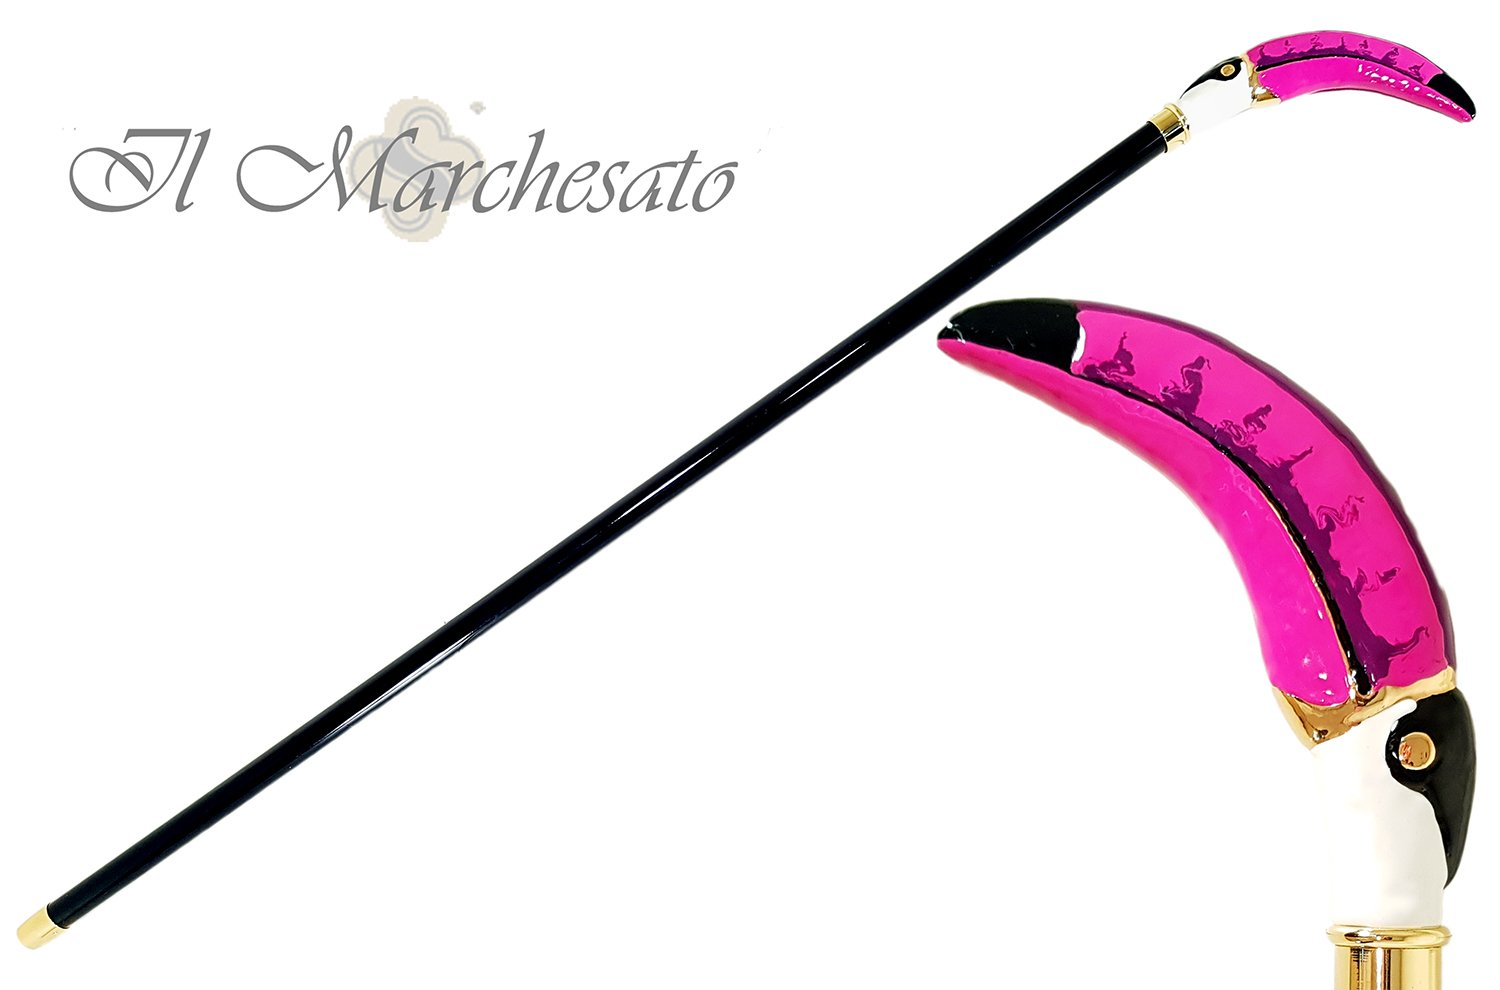 Original Toucan Walking stick - il-marchesato